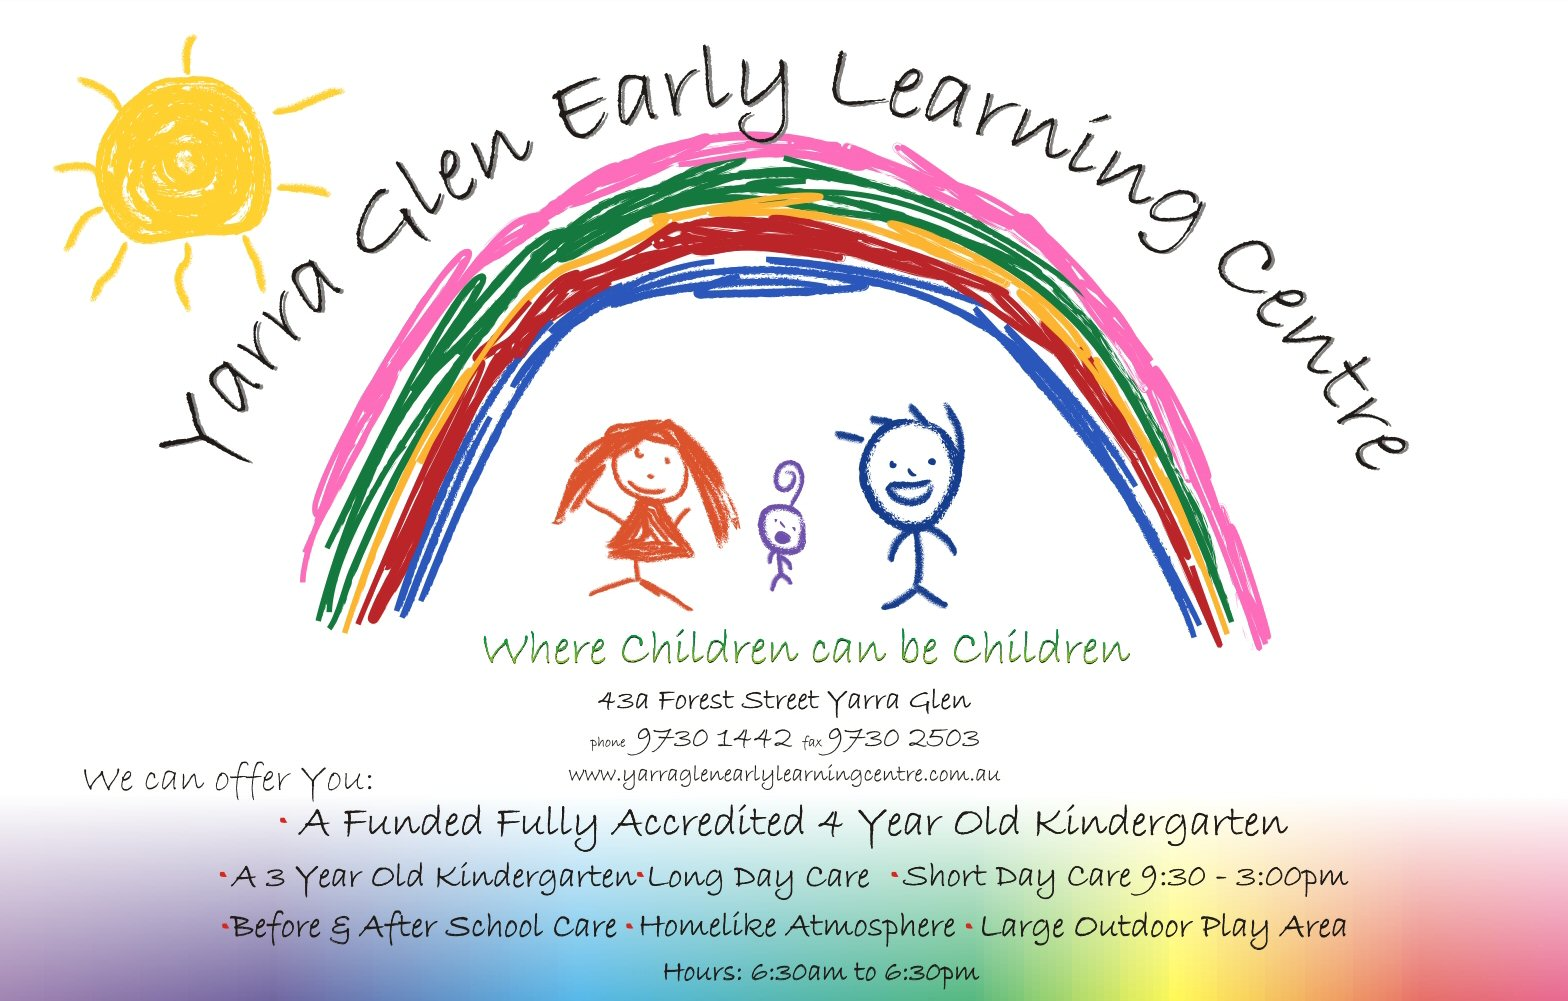 YARRA GLEN EARLY LEARNING CENTRE - Where Children can be Children...